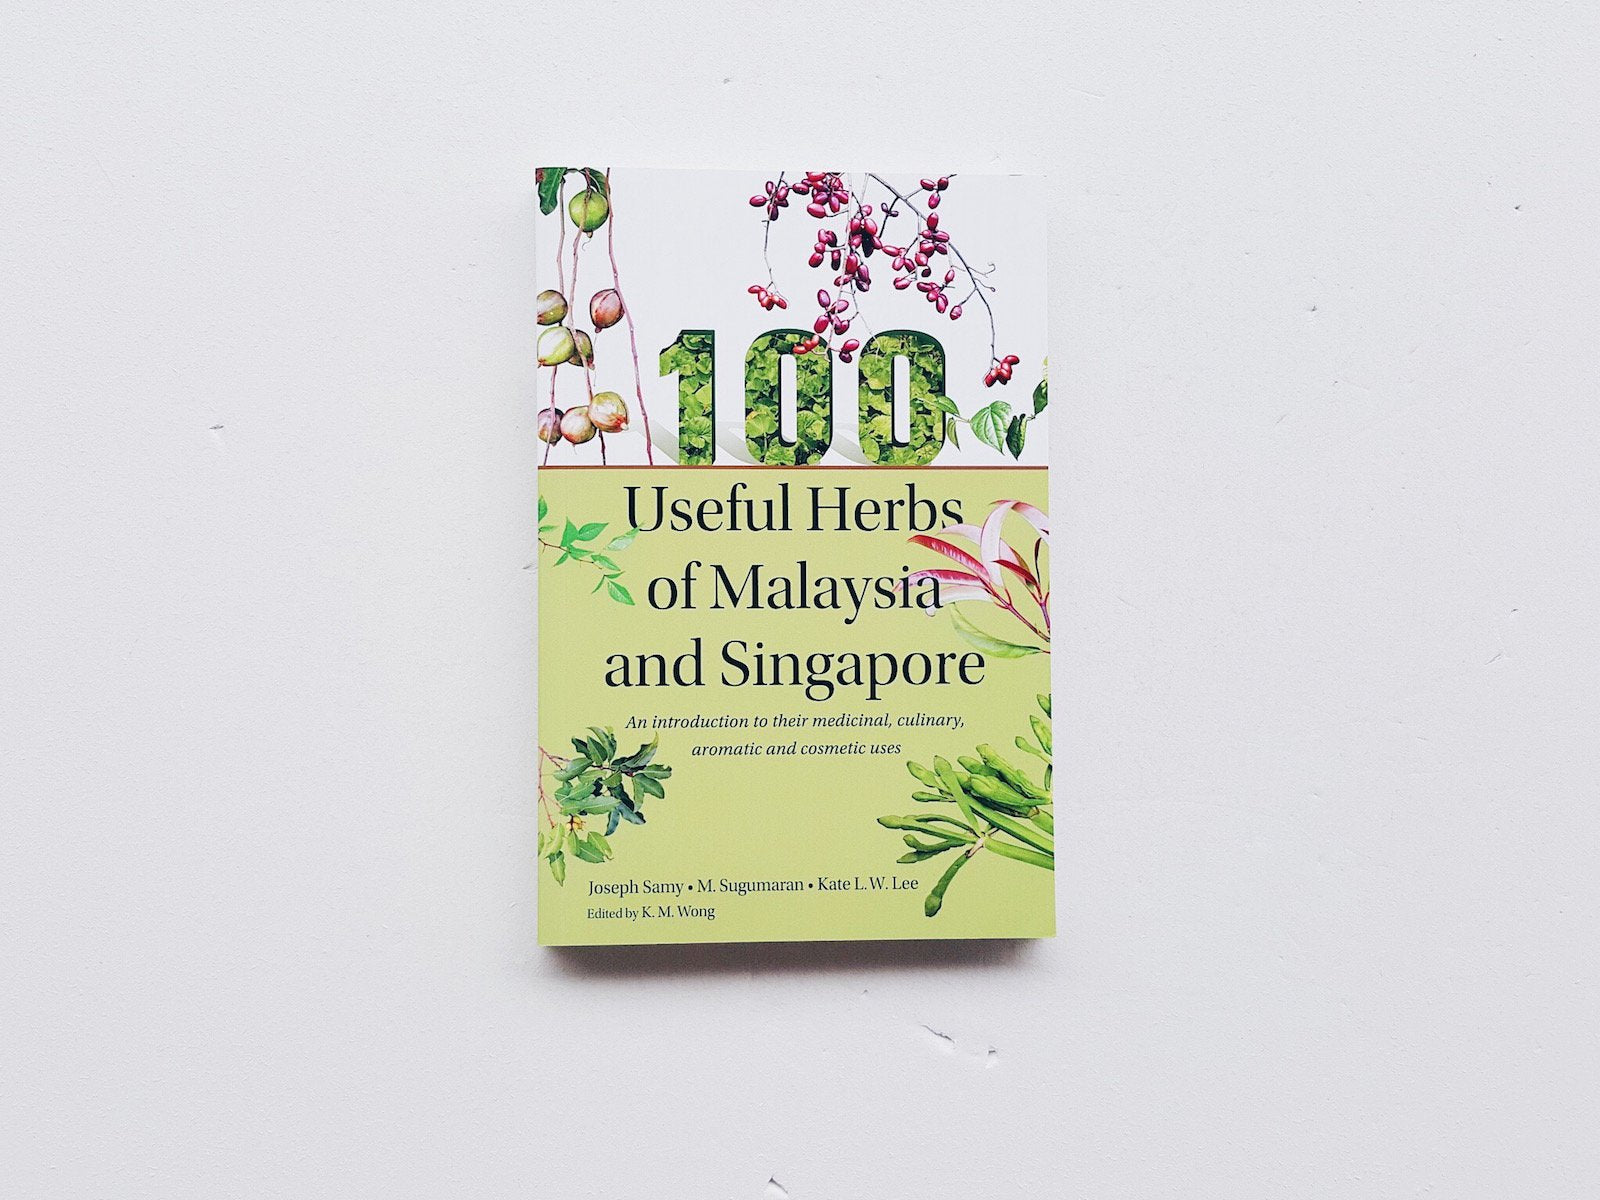 100 Useful Herbs of Malaysia & Singapore